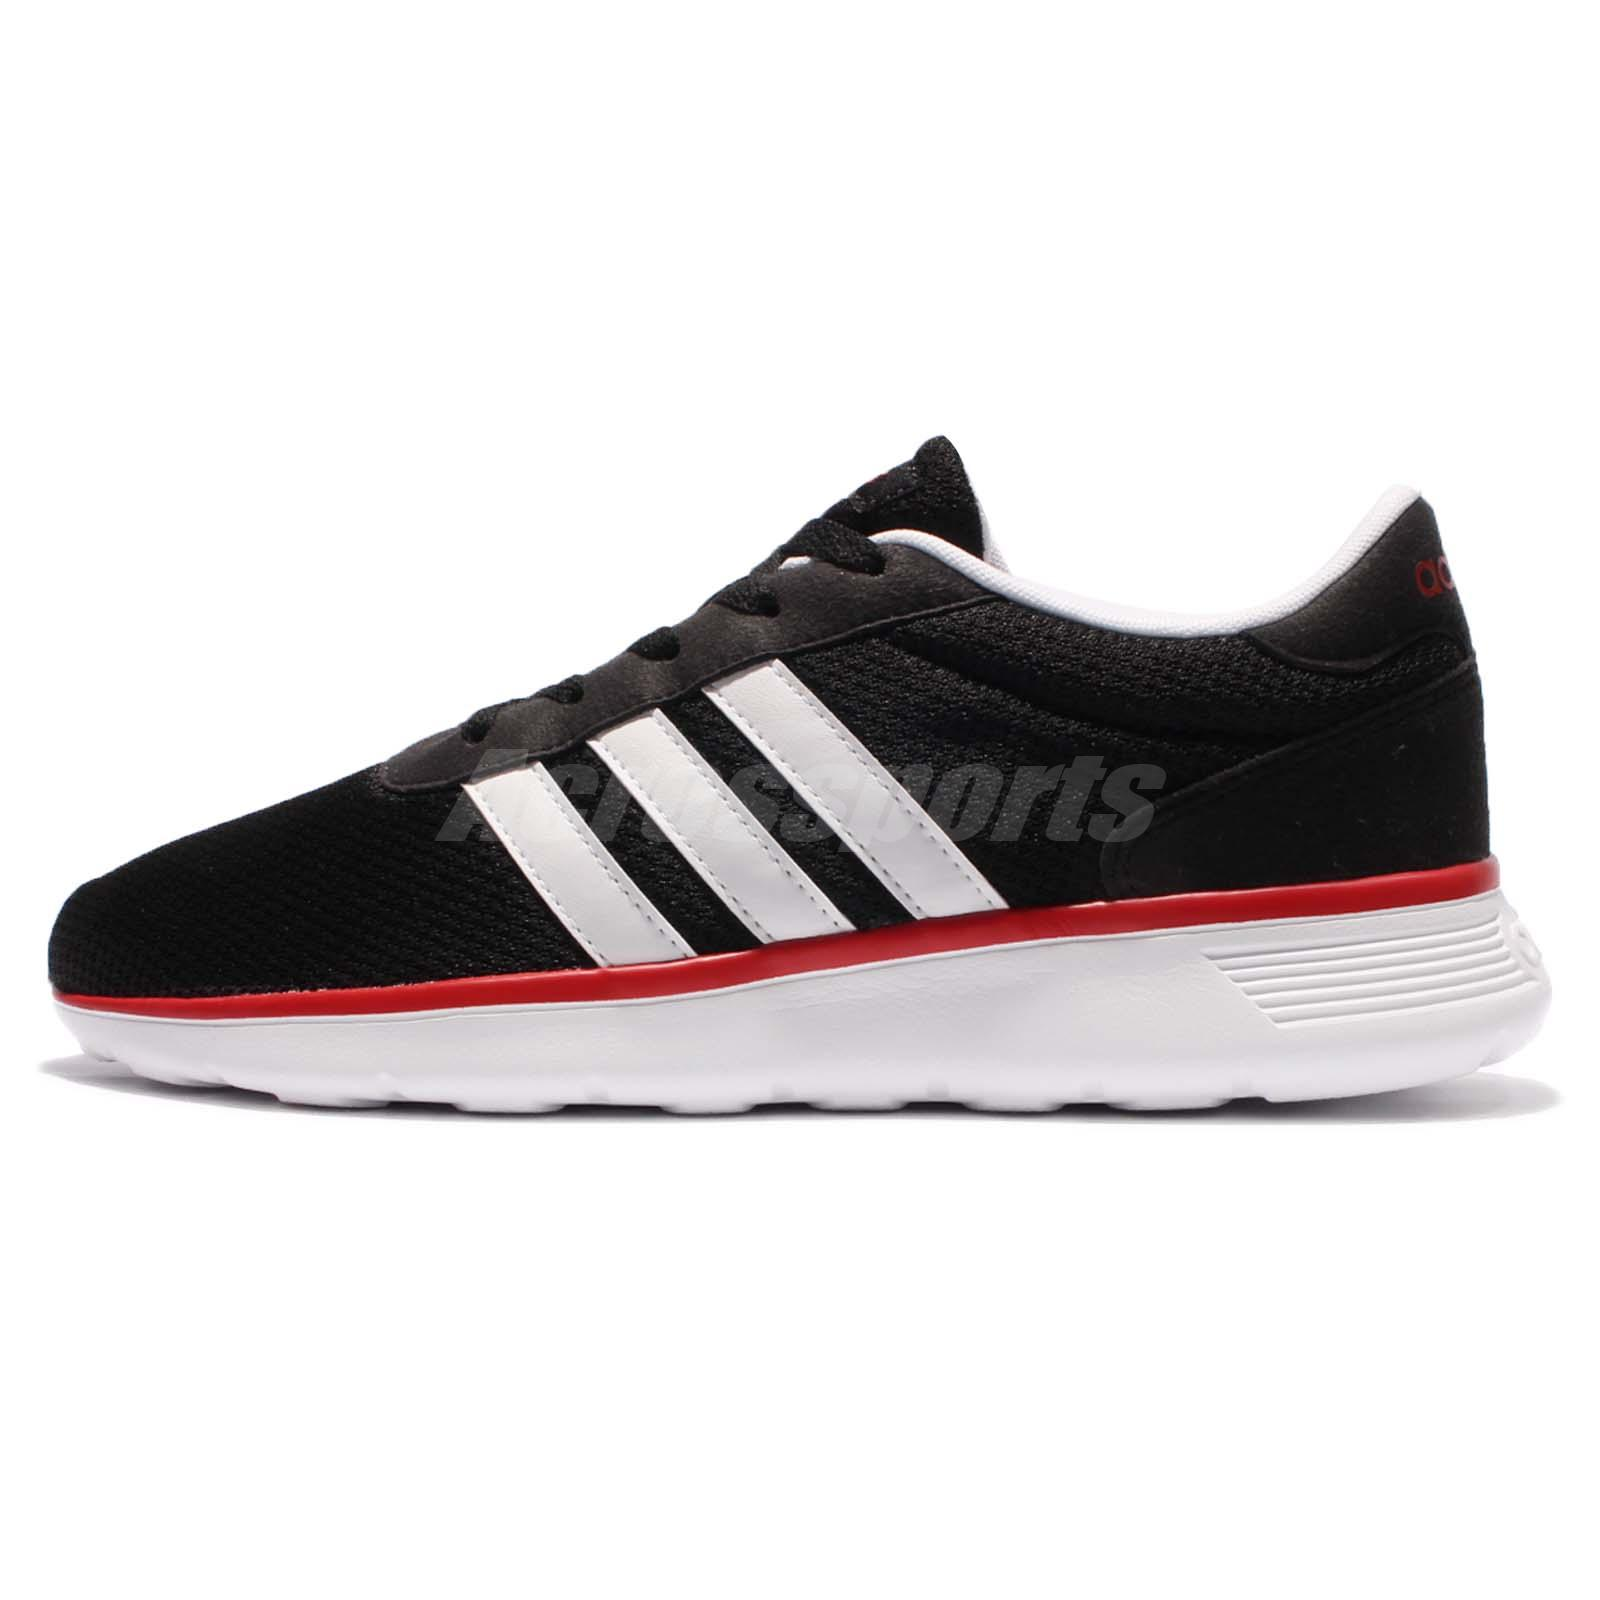 adidas neo label lite racer black white red men running. Black Bedroom Furniture Sets. Home Design Ideas